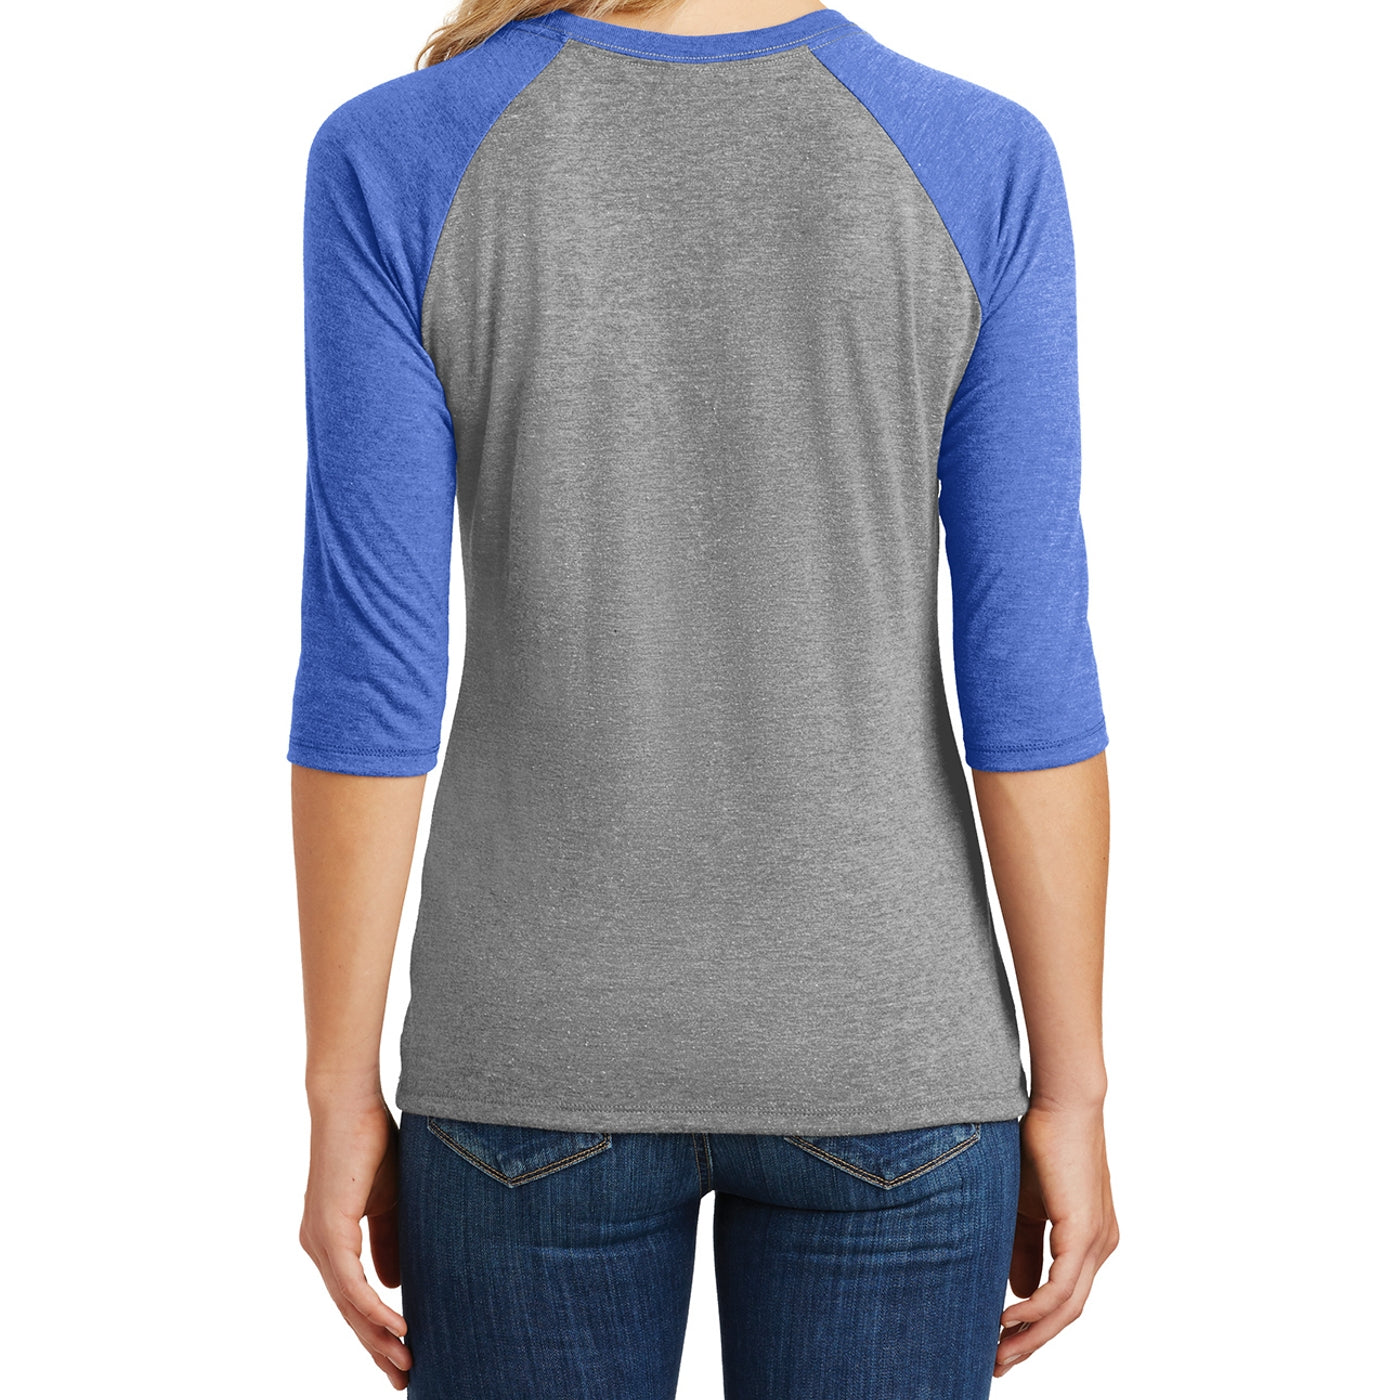 Women's Perfect Tri 3/4-Sleeve Raglan - Royal Frost/ Grey Frost